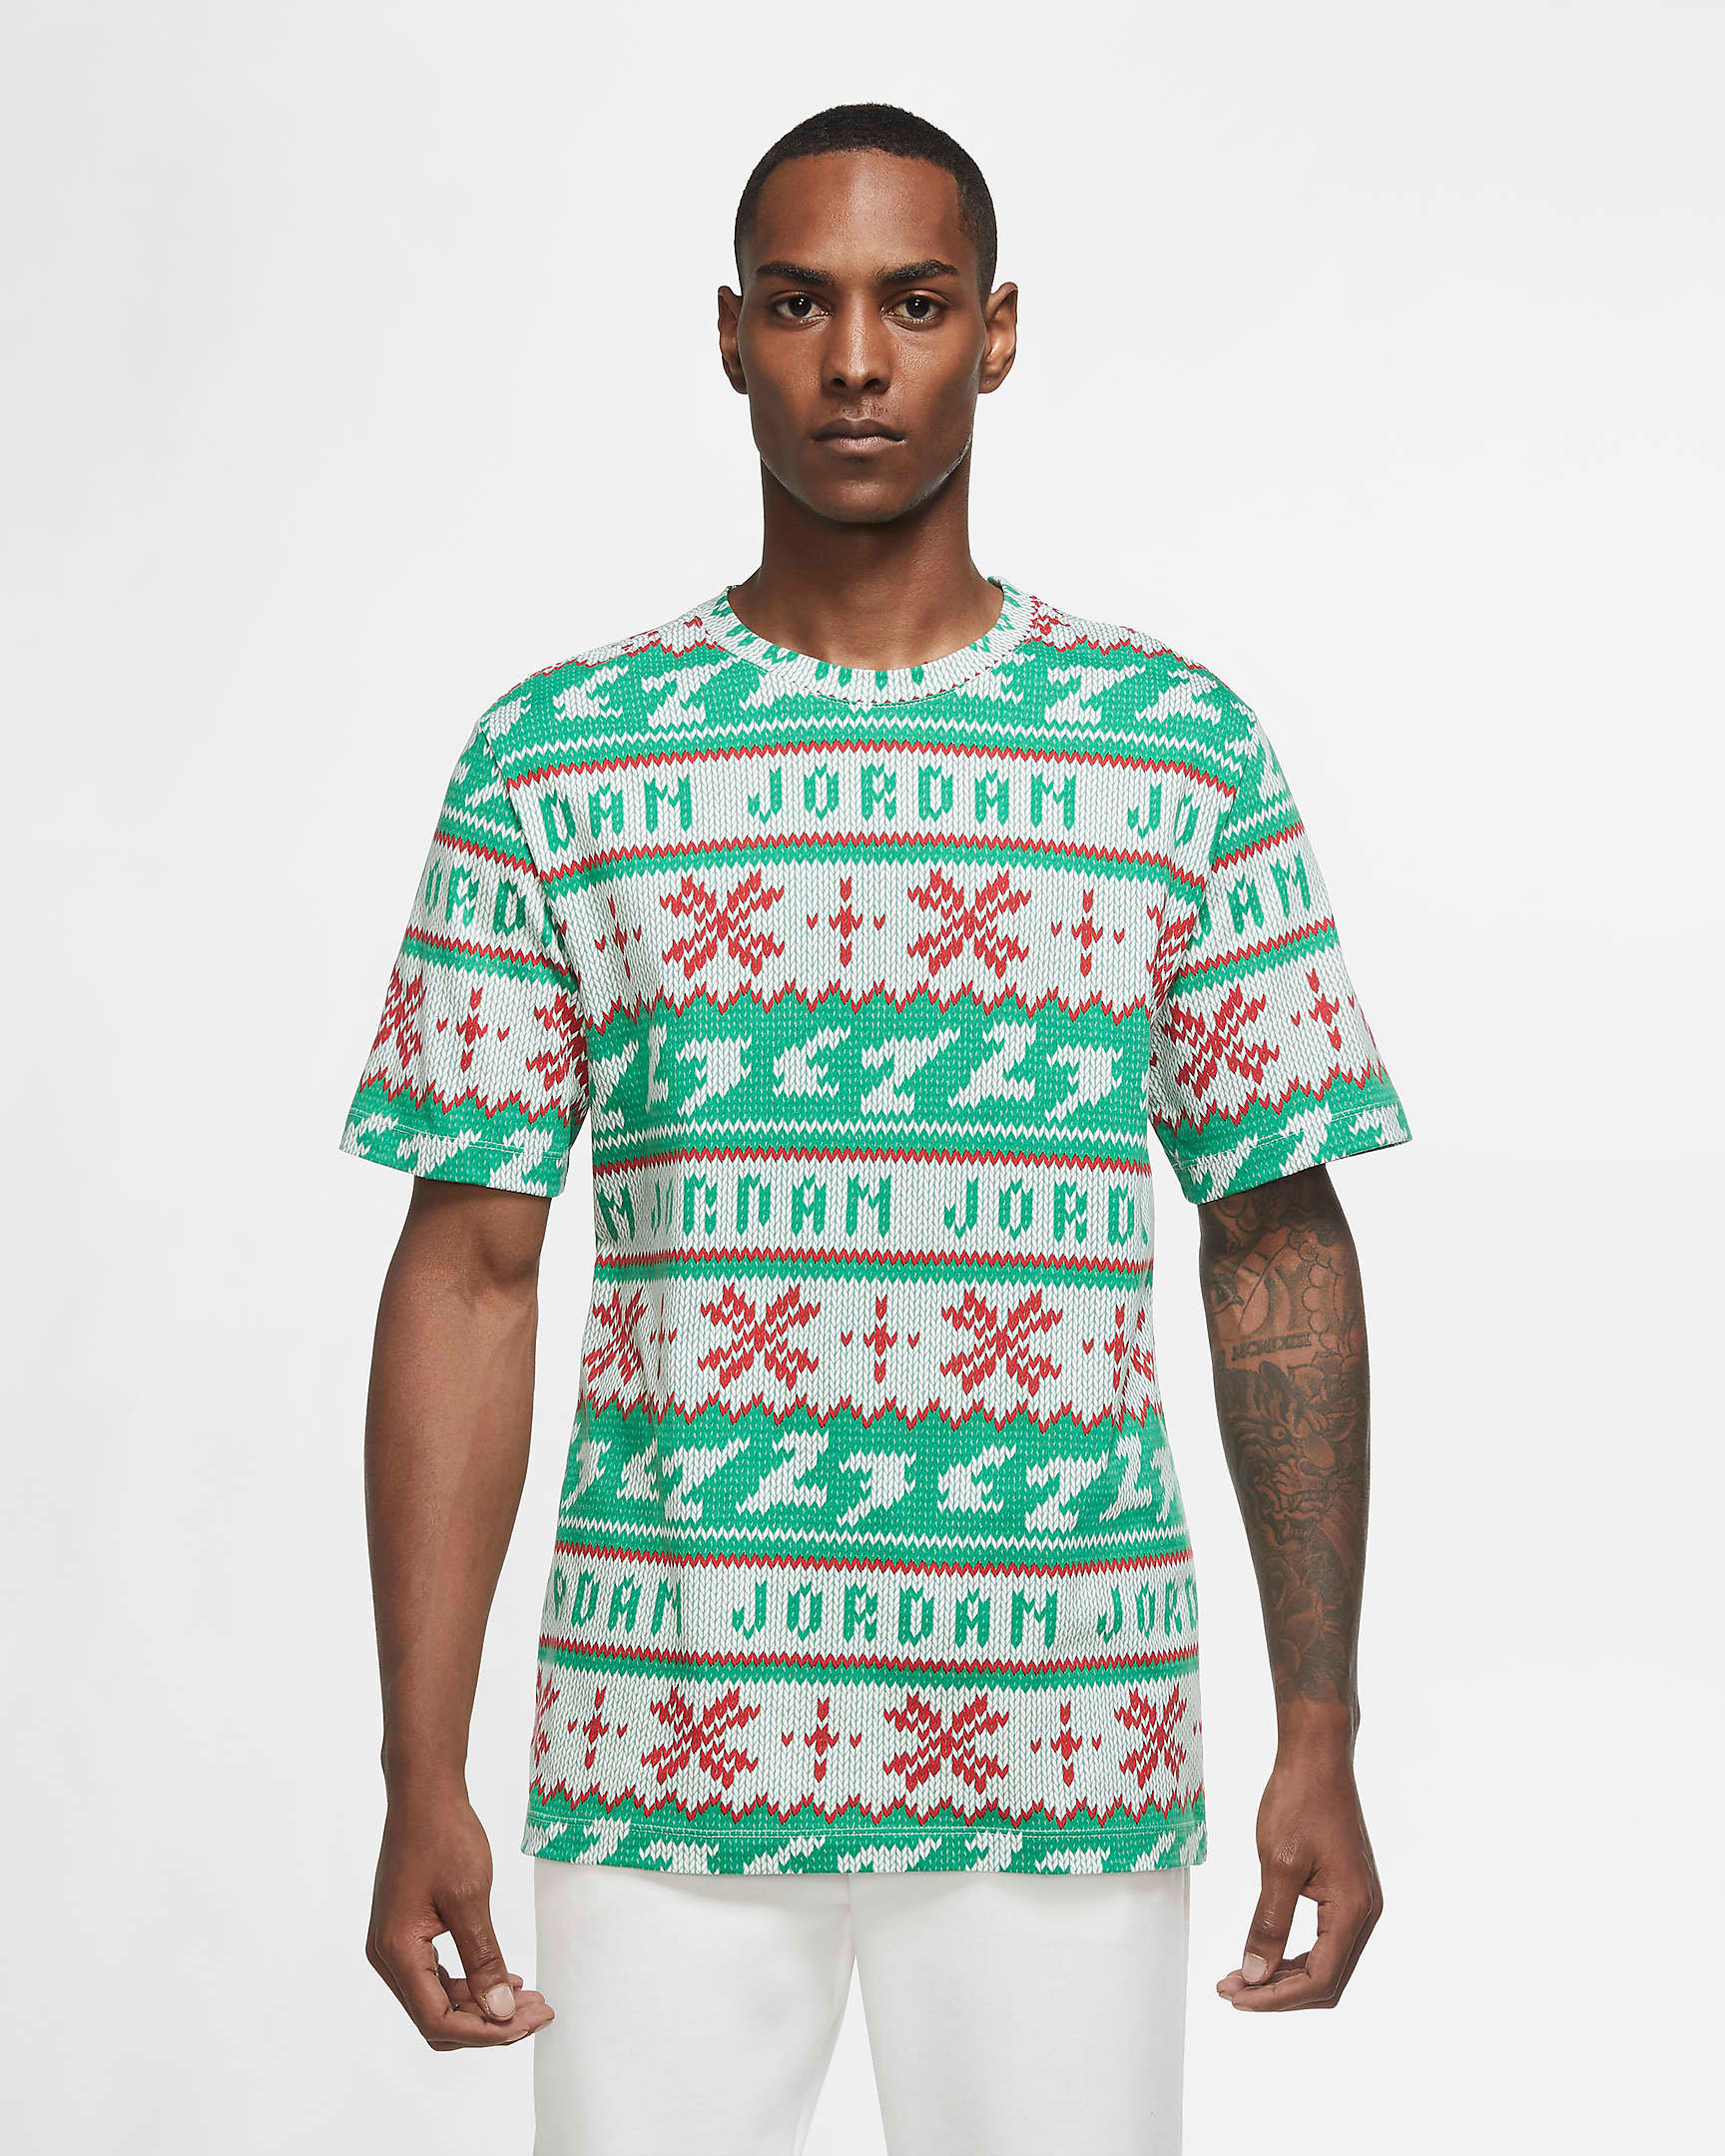 jordan-holiday-ugly-sweater-shirt-green-red-white-1